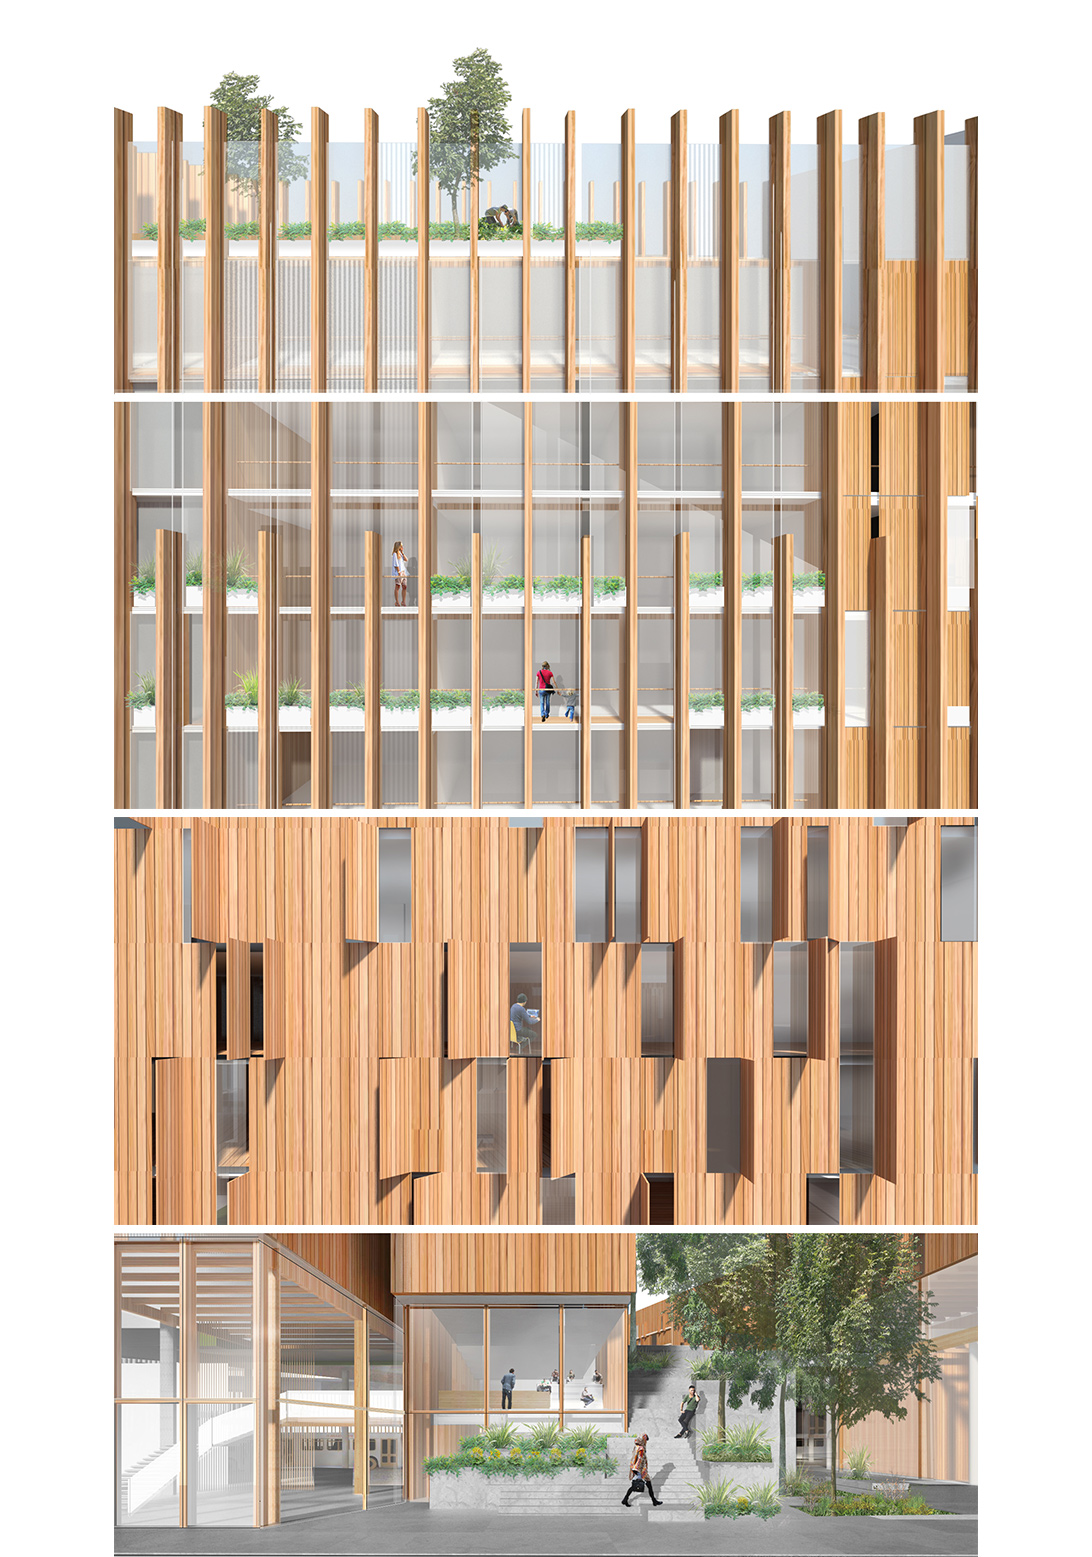 Elevation Woodwork : Réinventer paris michael green architecture